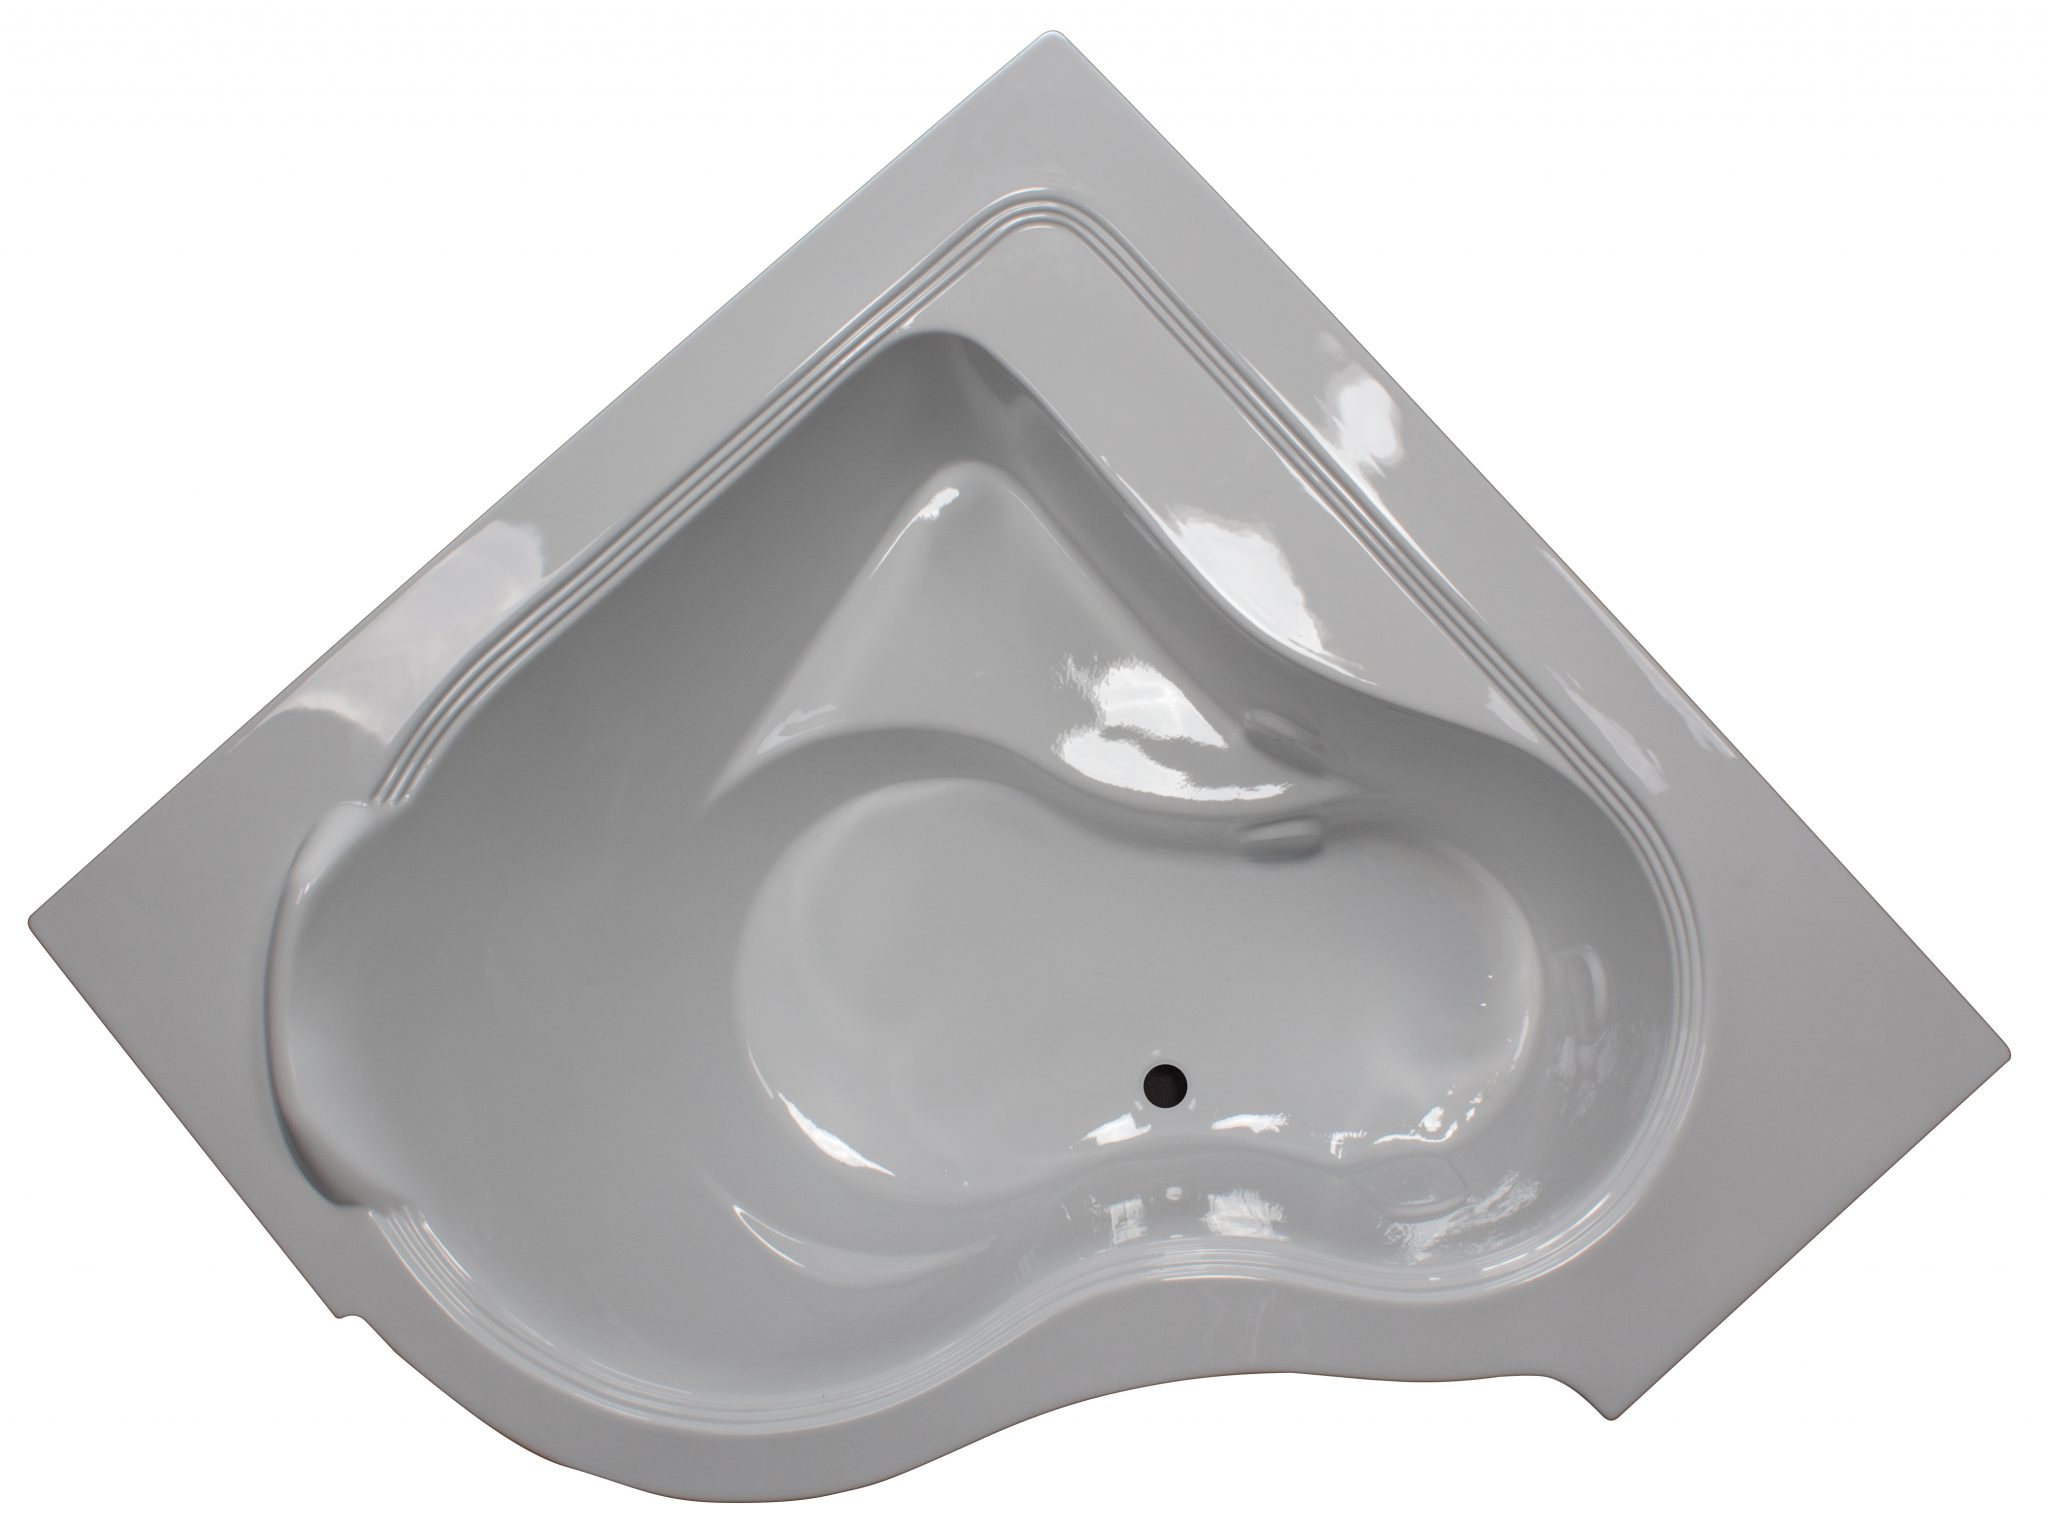 High-Quality Bathtubs Whirlpool, Jacuzzi, Shower Pan, Soaker, USA Made